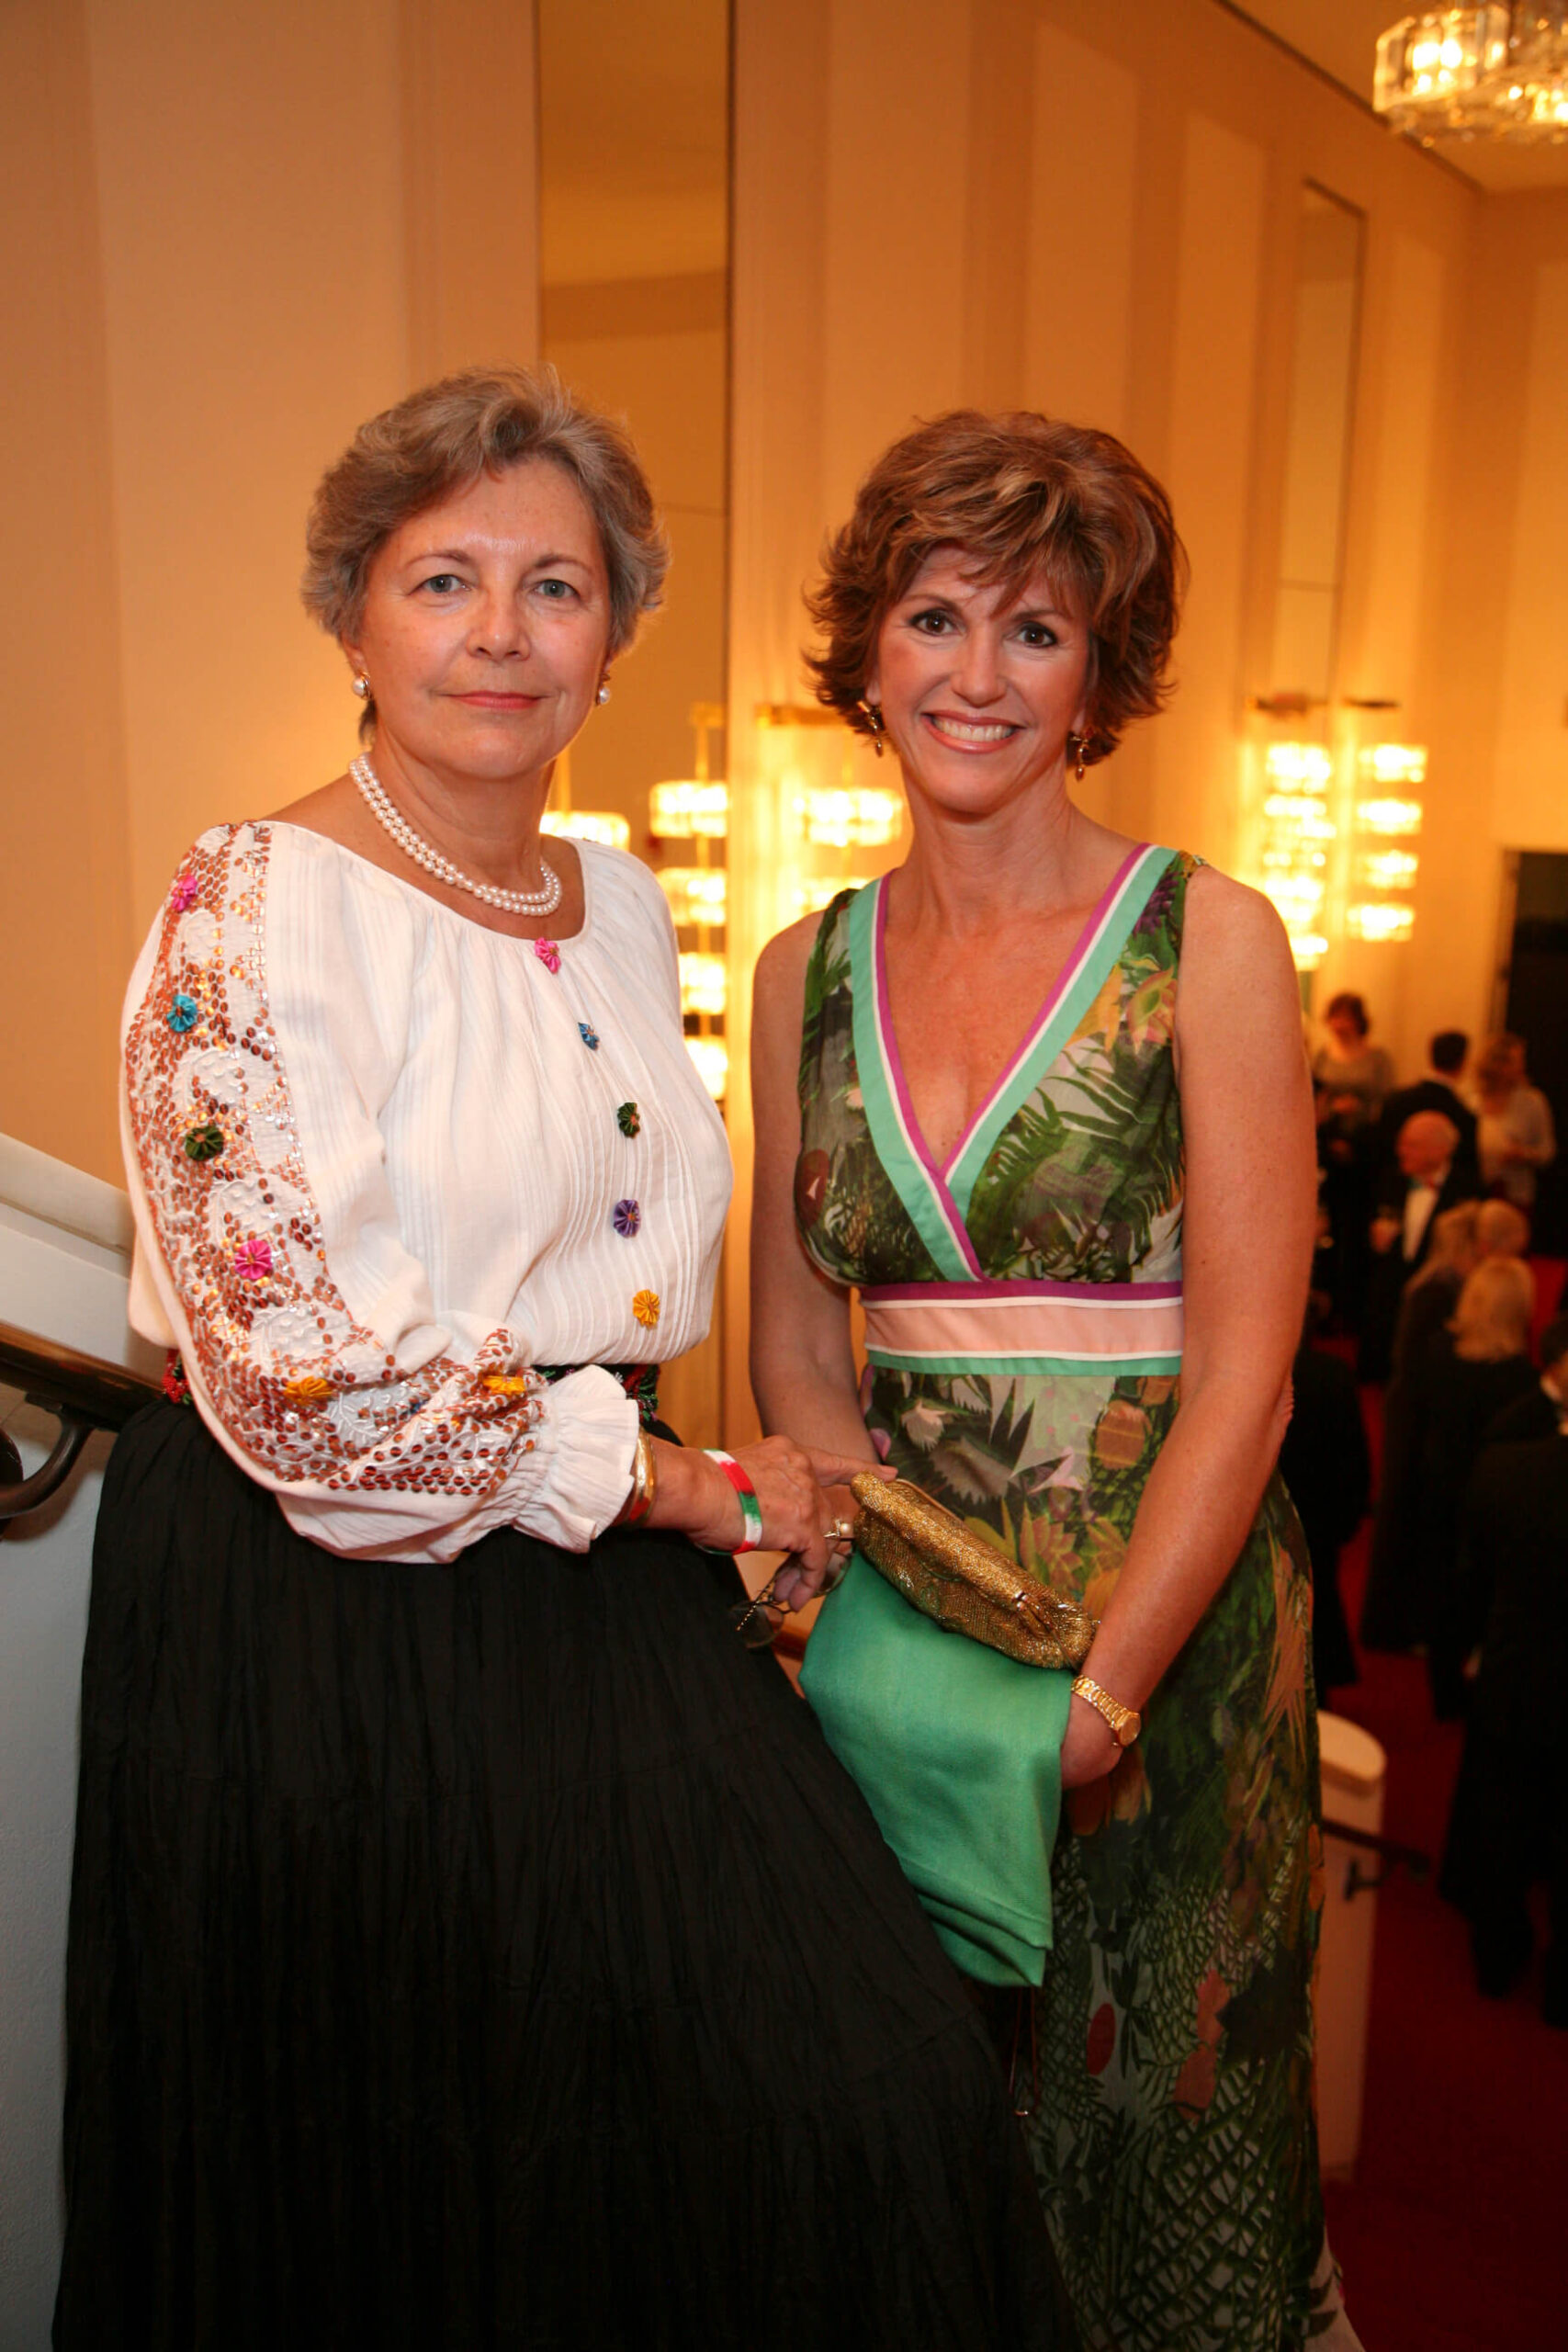 Mrs. Edith Lauer, and Ms. Susan Hutchison